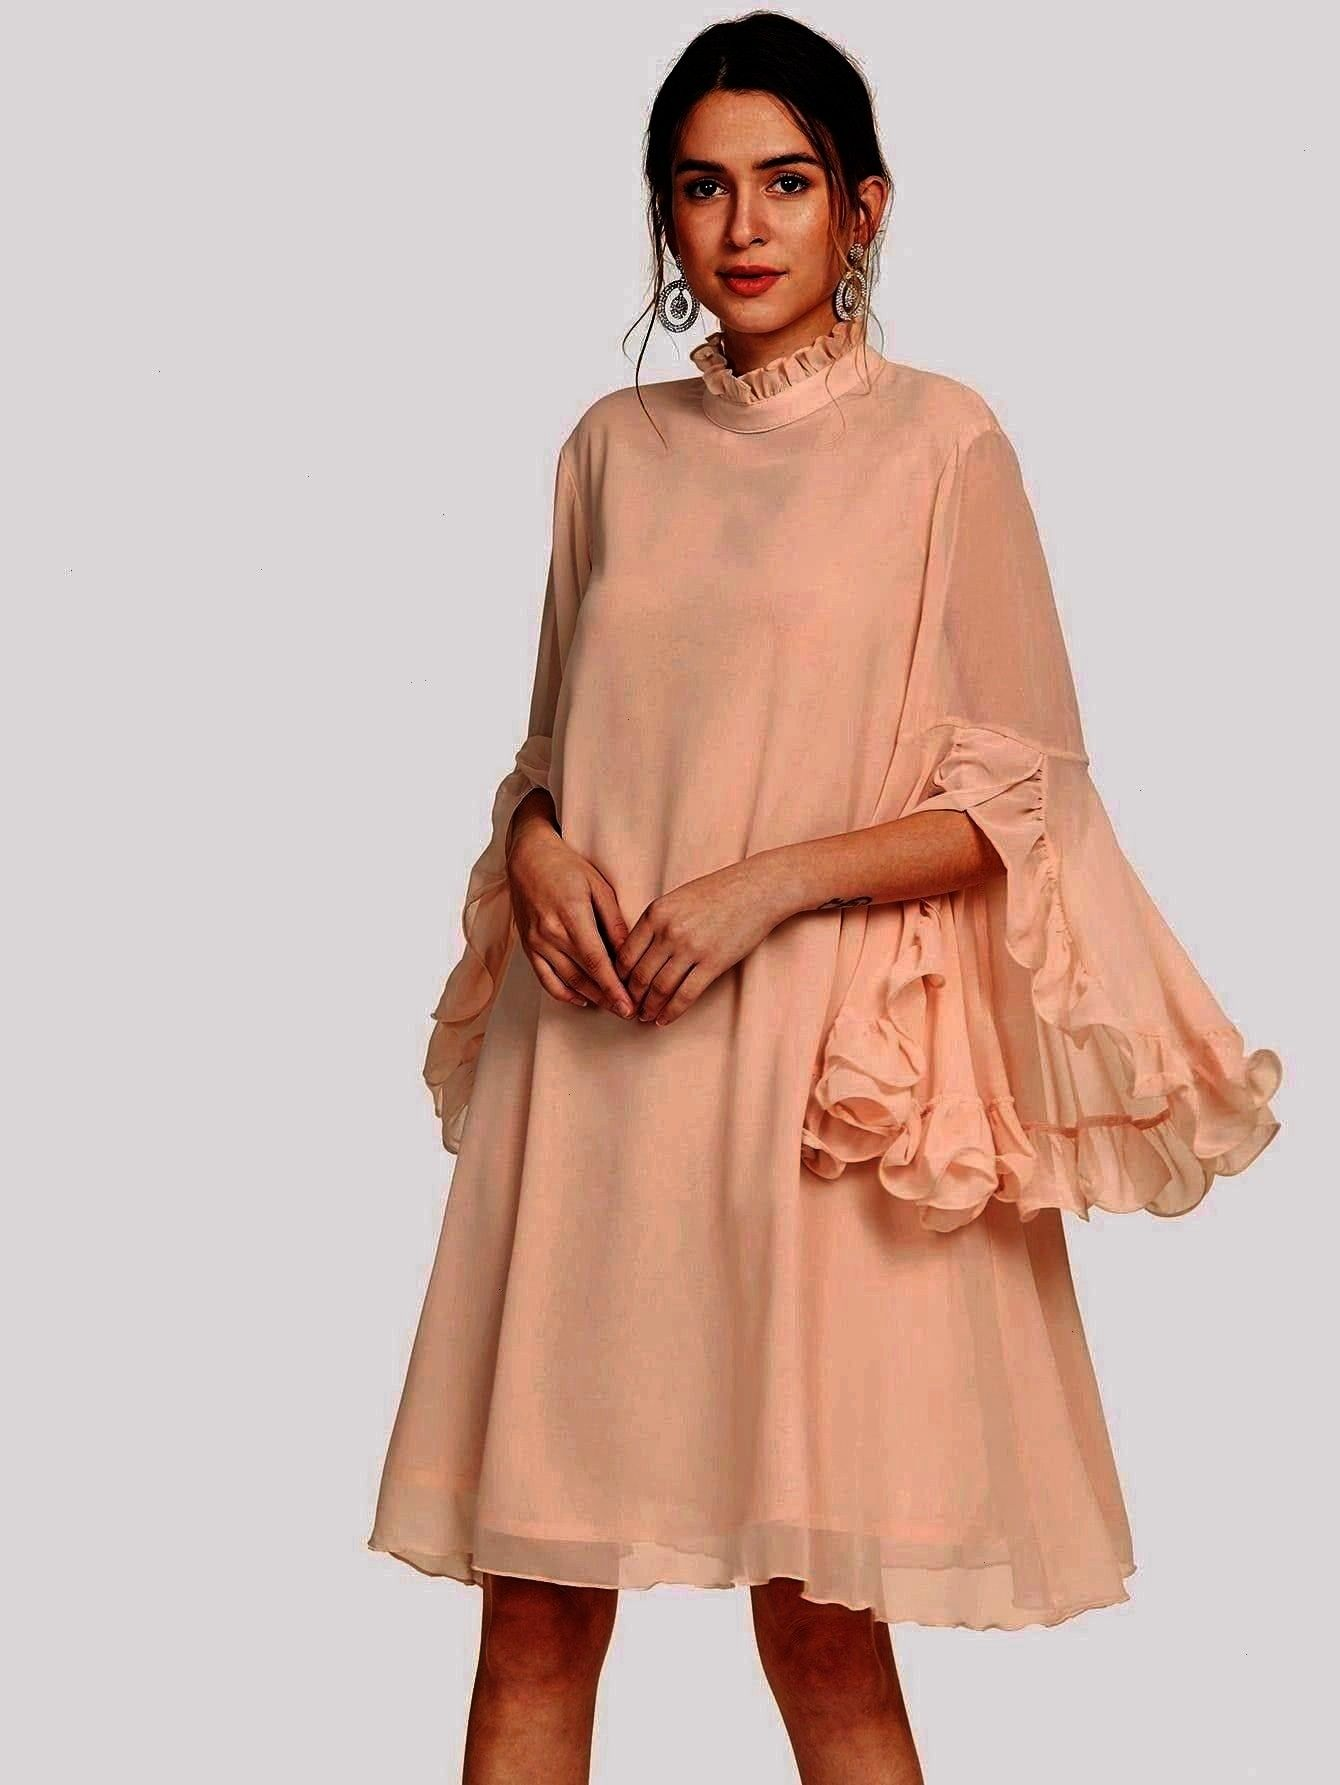 Collar Three Quarter Length Sleeve Natural Beige and Pastel Midi Length Frill Sleeve And Cuff Flowy DressbeigeRomantic Tunic Plain Loose Stand Collar Three Quarter Length...